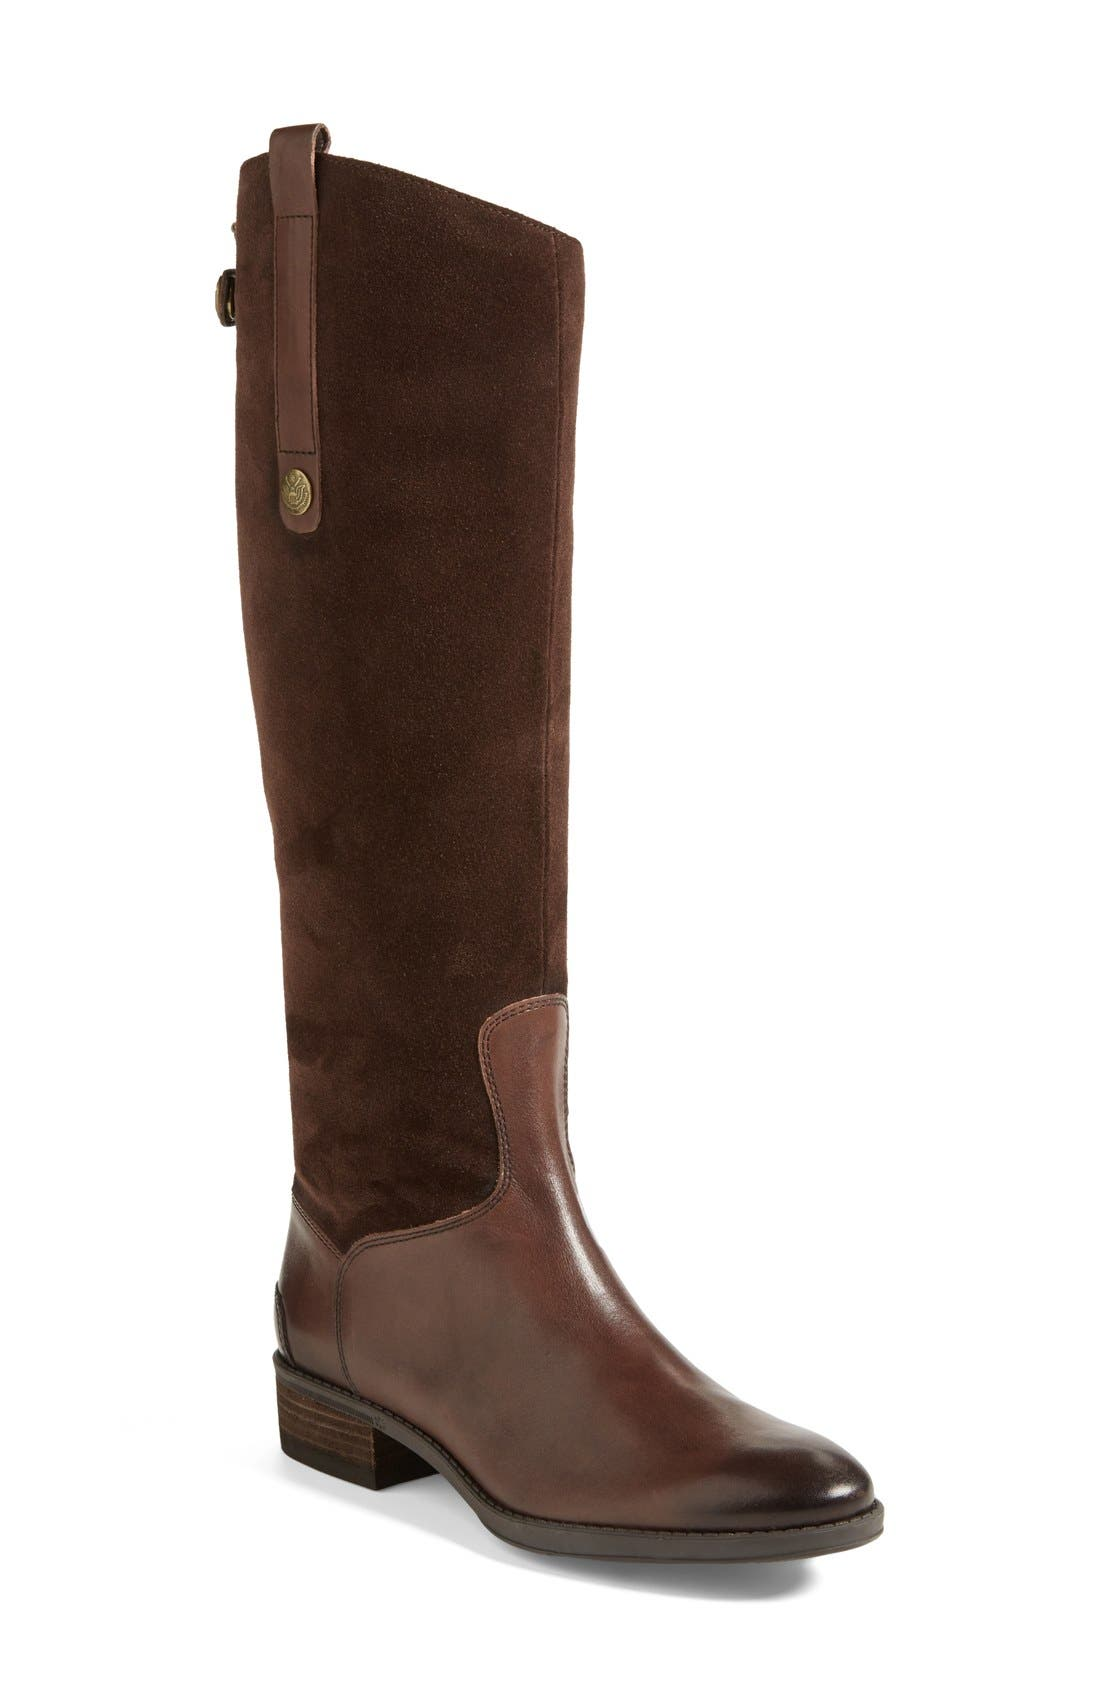 Alternate Image 1 Selected - Sam Edelman 'Pembrooke' Boot (Nordstrom Exclusive) (Women)